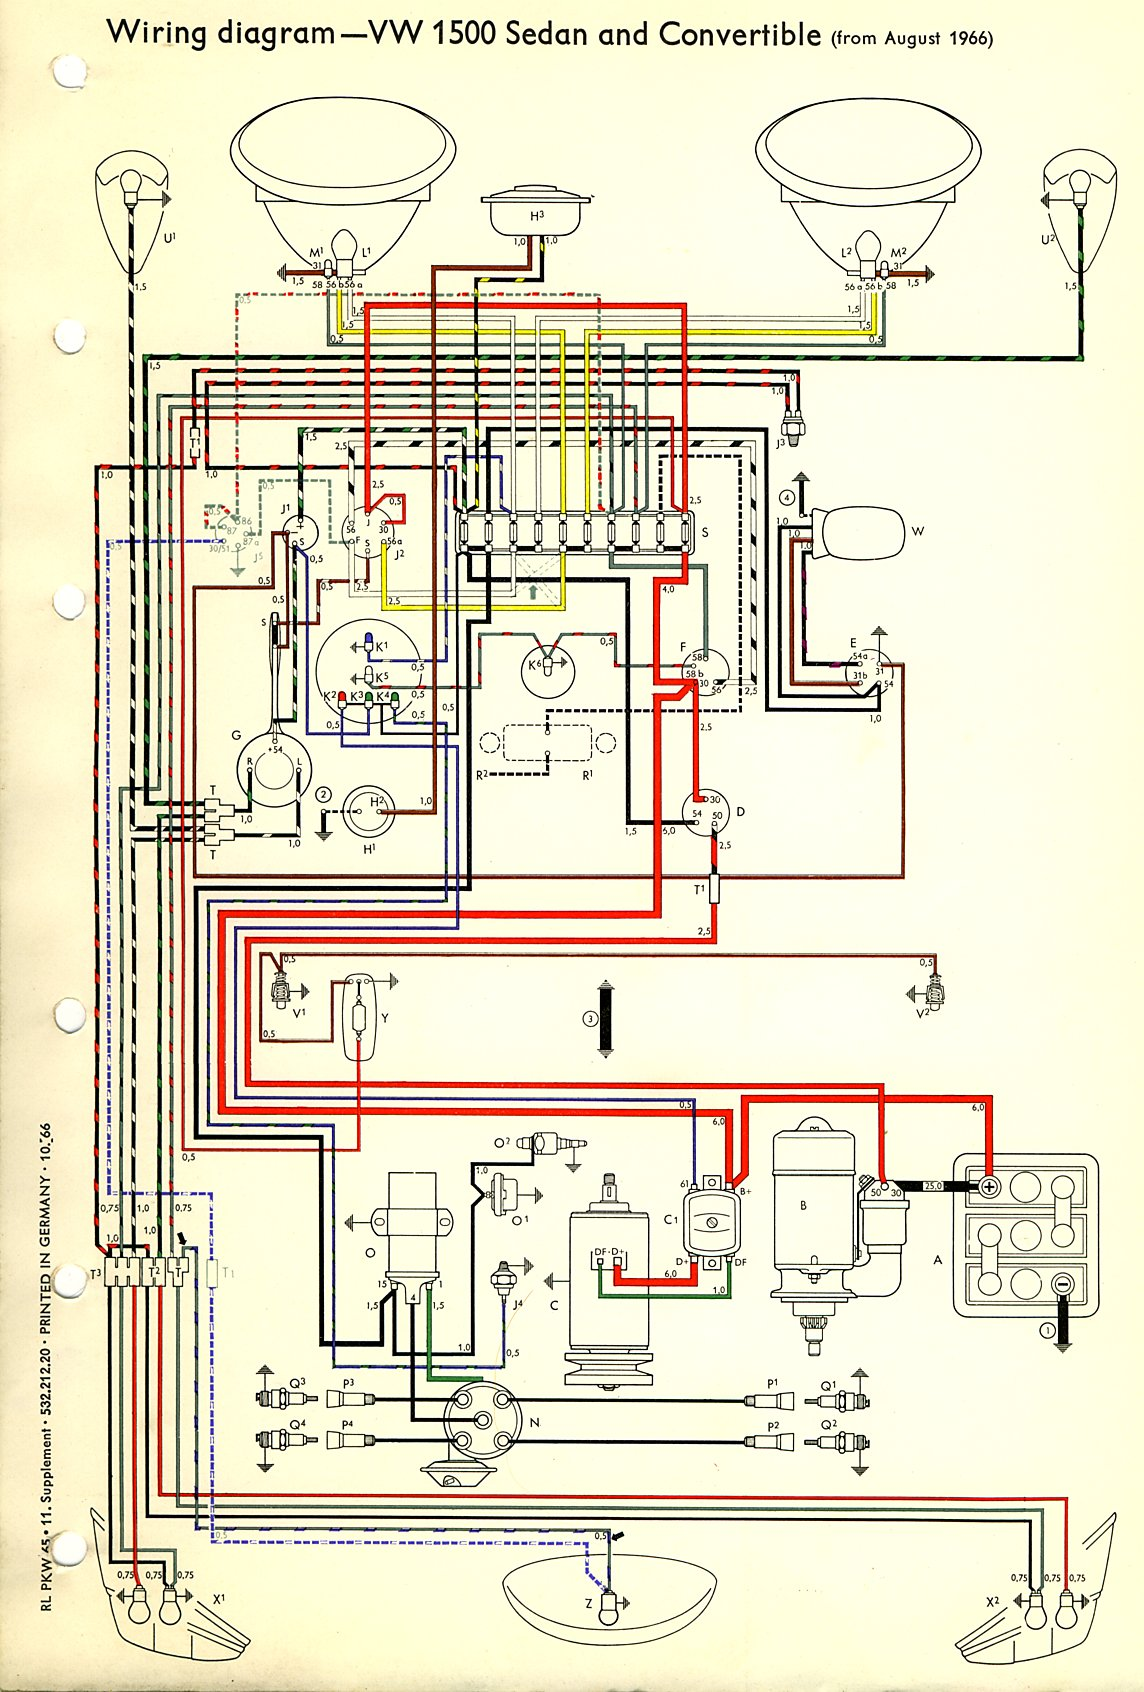 67 Volkswagen Generator Wiring Diagram Not Lossing Shunt For An Alternator Vw Detailed Rh 15 7 Ocotillo Paysage Com Two Wire